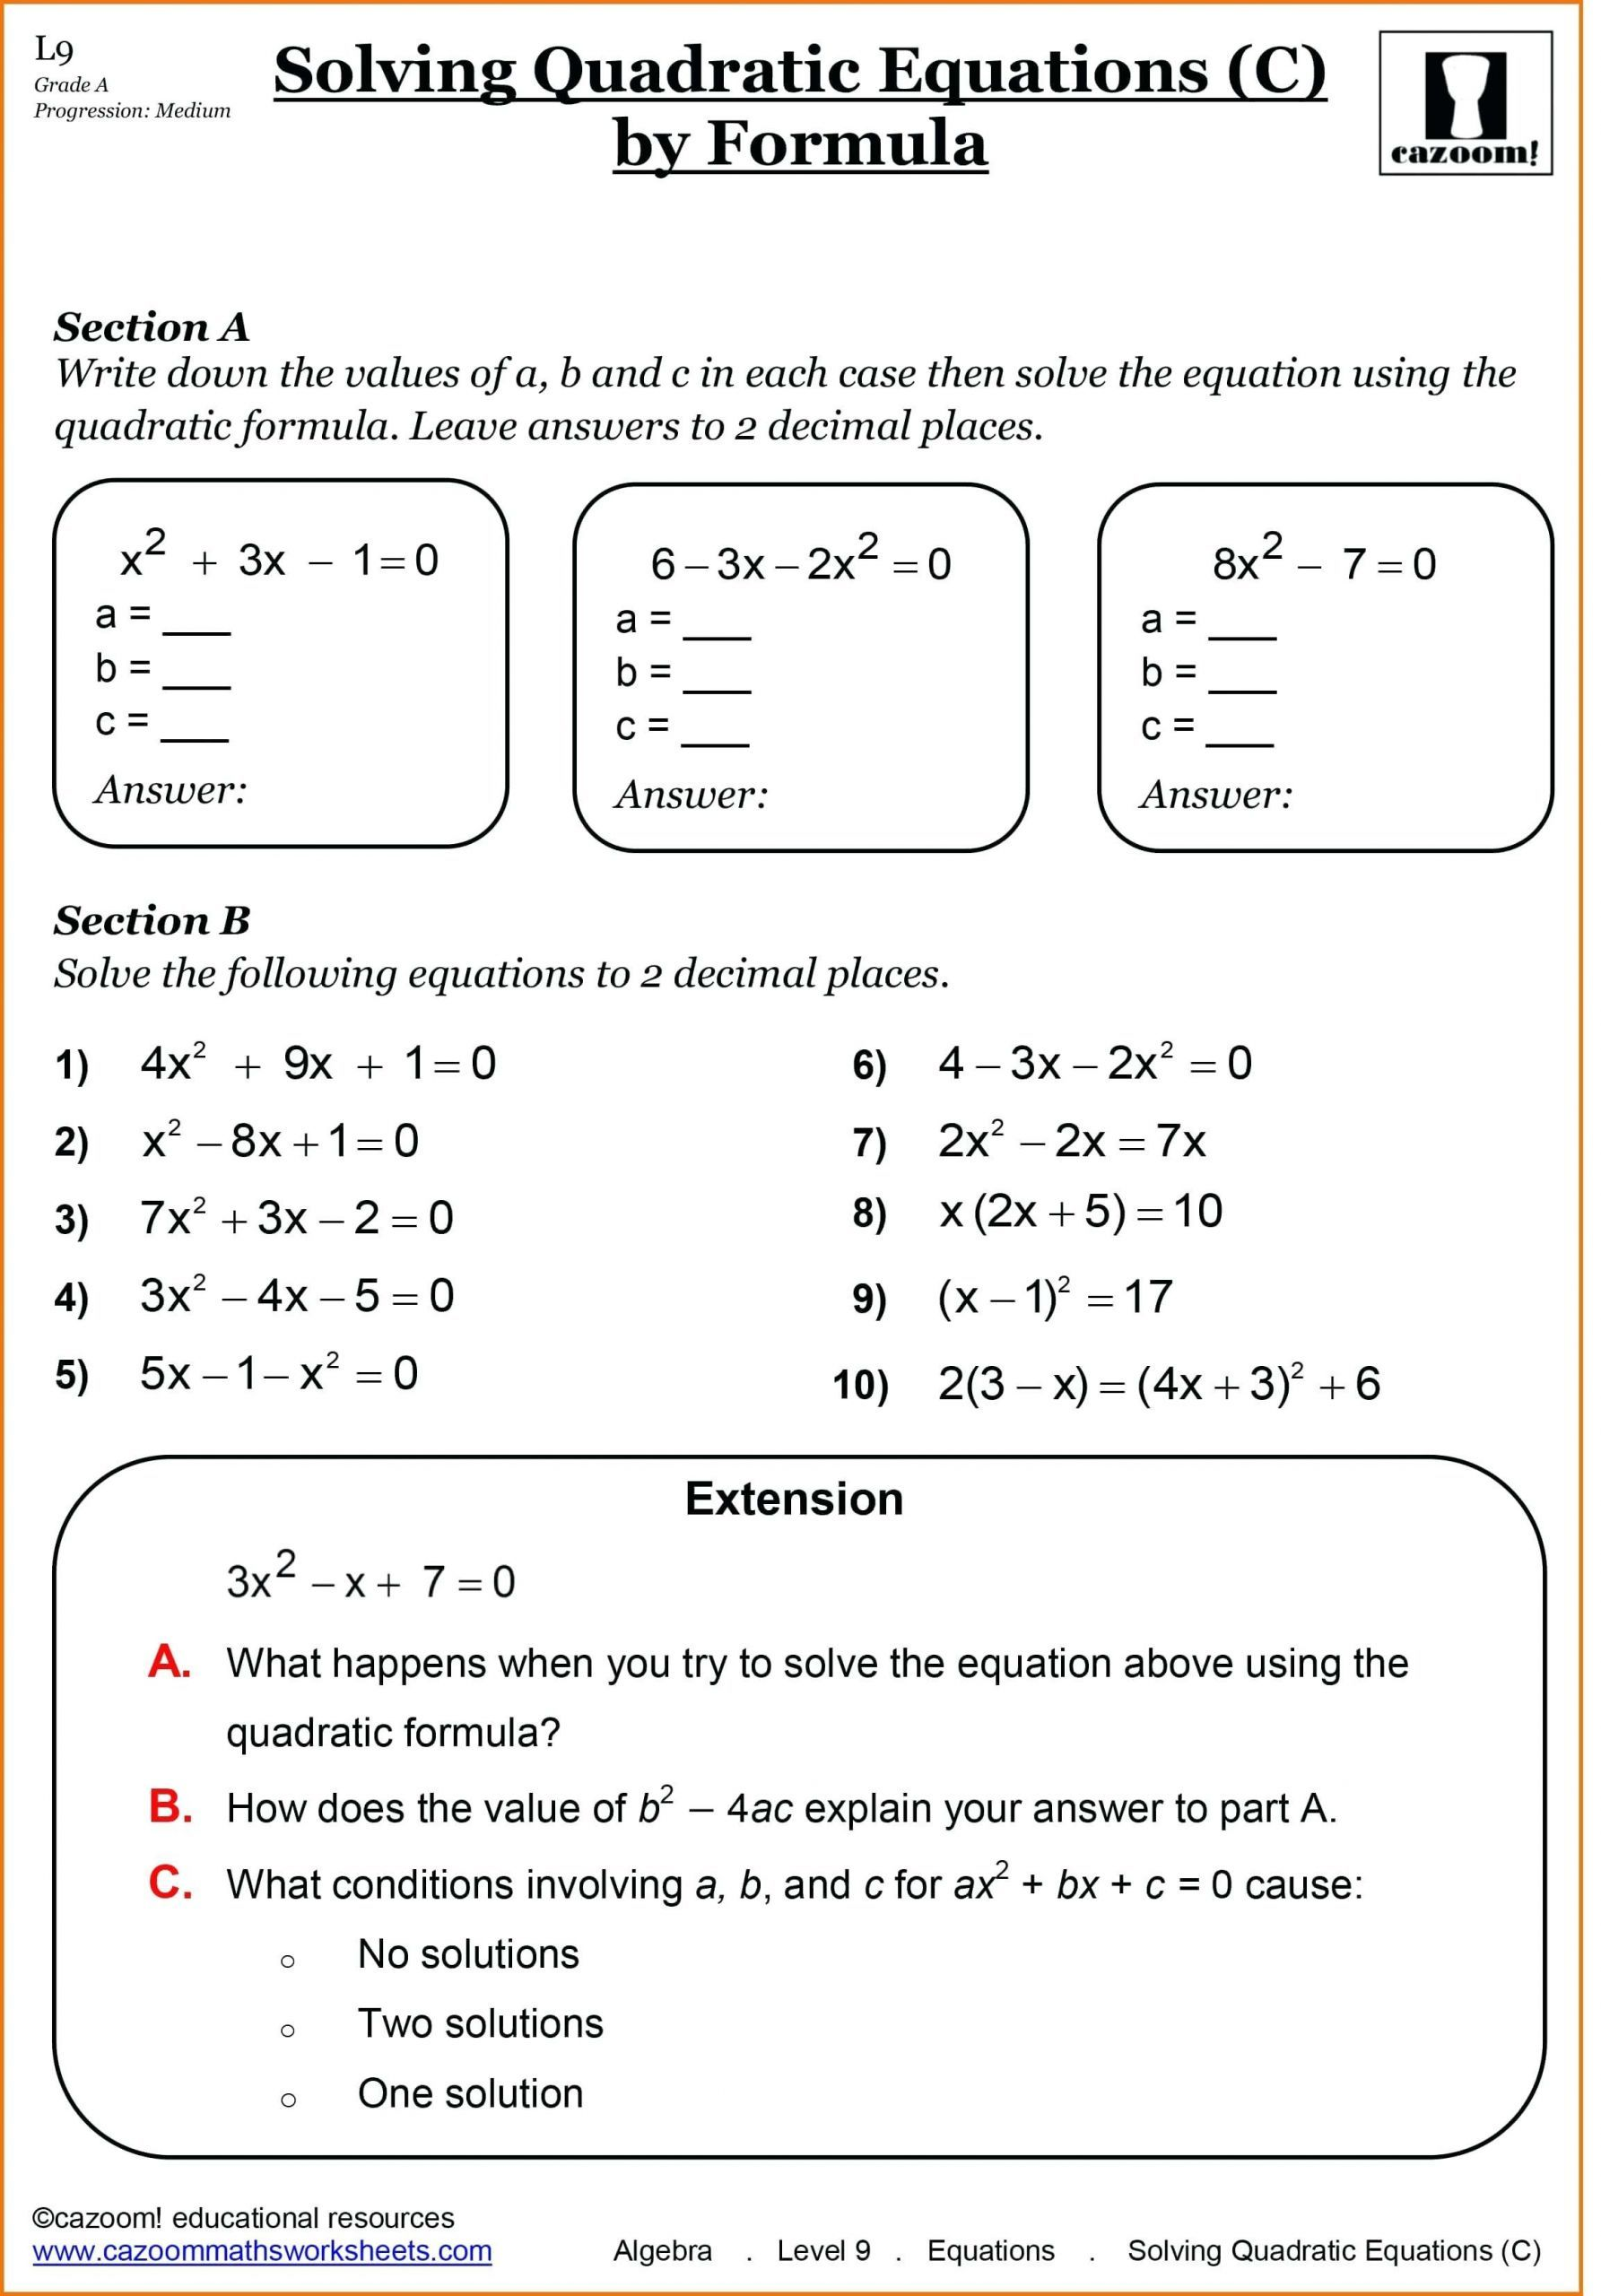 10 Inspirational 7th Grade Math Worksheets Algebra